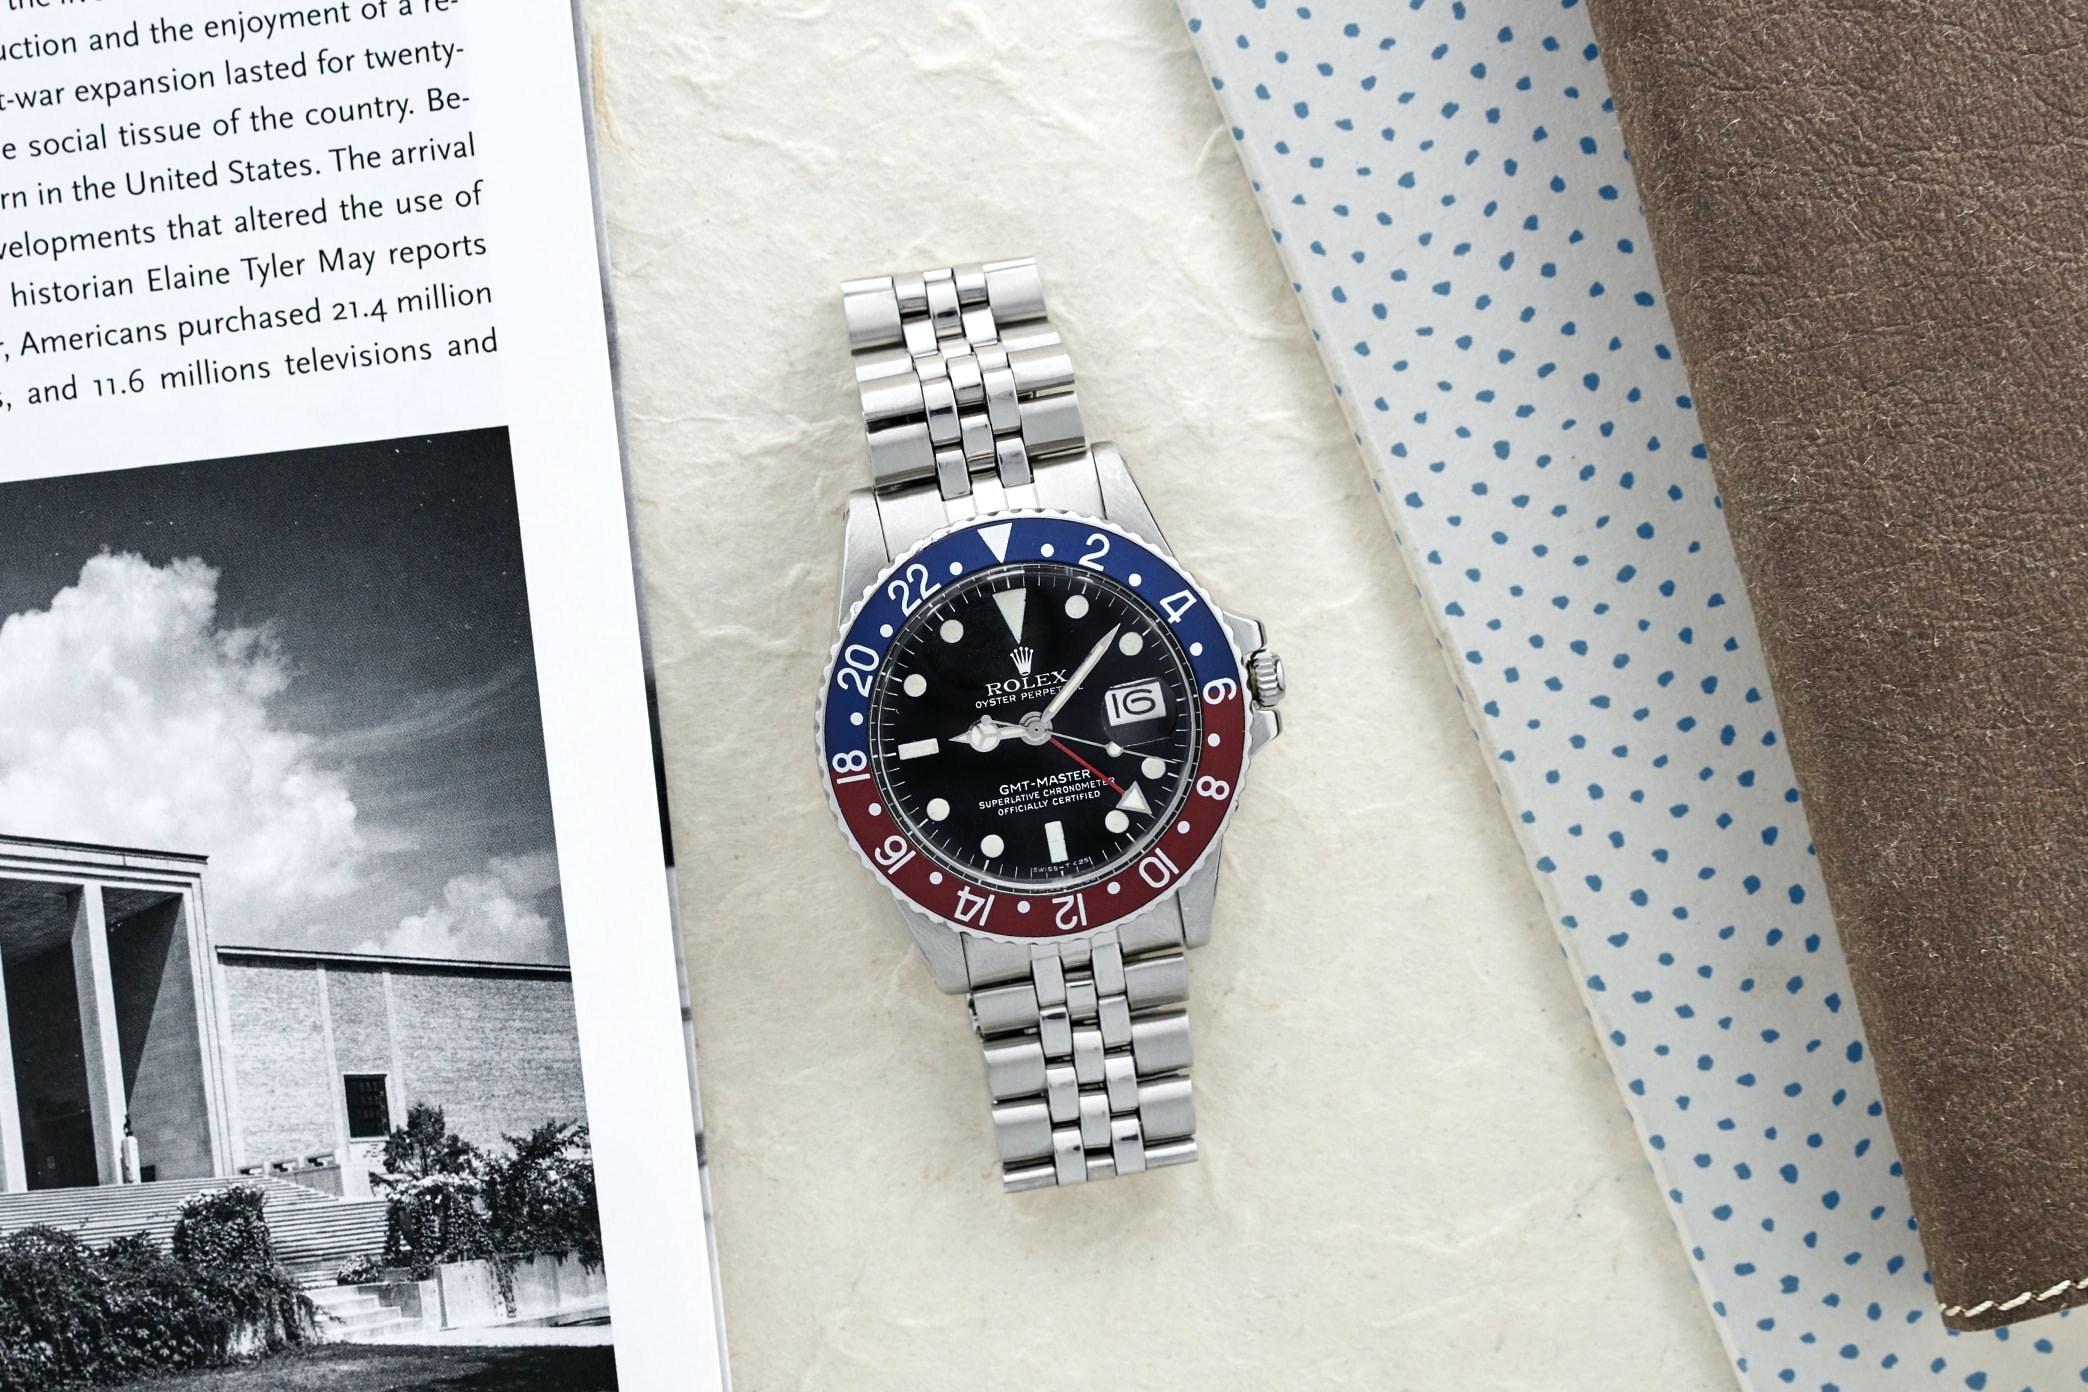 Rolex GMT-Master Reference 1675 In The Shop: A 1990 Tudor Submariner Reference 79090 Blue, A 1979 Rolex GMT-Master Reference 1675, And A 1966 Breitling Navitimer In The Shop: A 1990 Tudor Submariner Reference 79090 Blue, A 1979 Rolex GMT-Master Reference 1675, And A 1966 Breitling Navitimer 467 RolexGMT Lifestyle LANDSCAPE